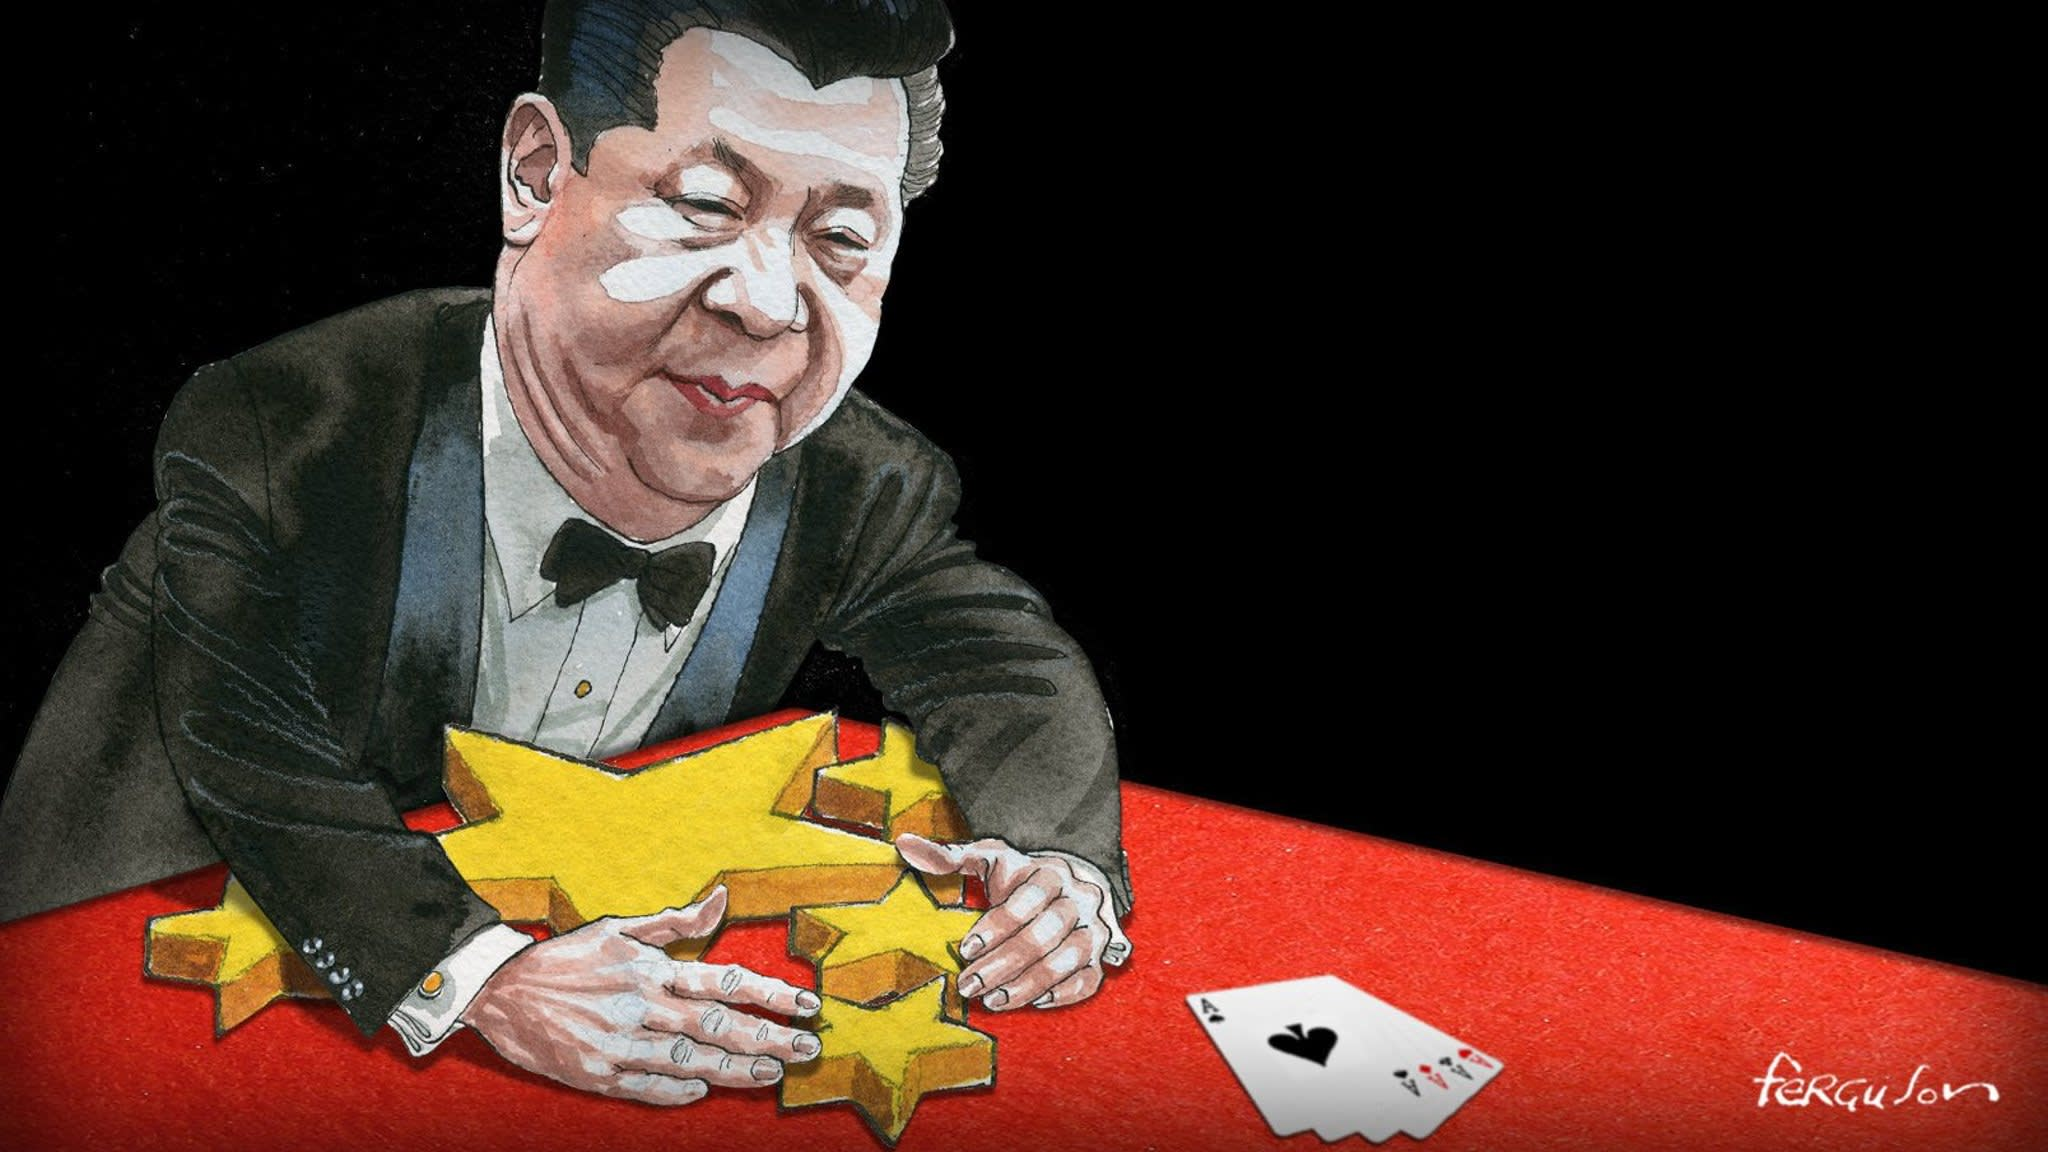 Xi's power grab means China is vulnerable to the whims of one man